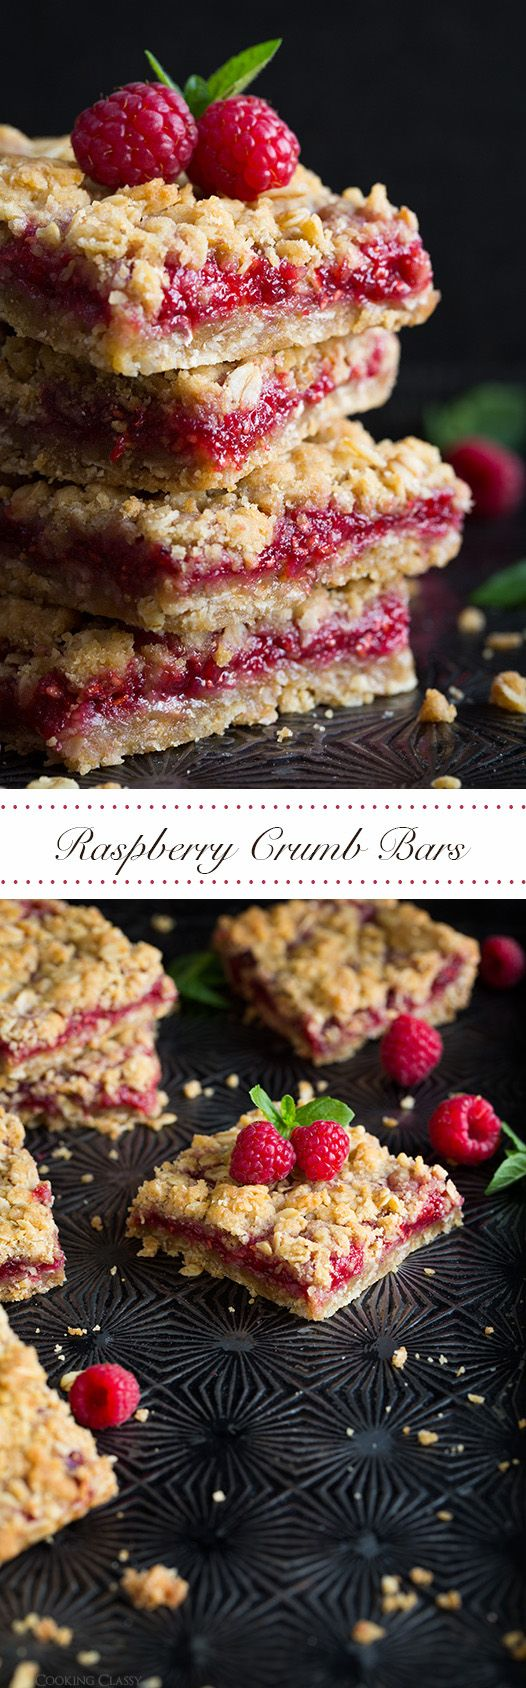 Raspberry Crumb Bars - these are so easy to make and they use 7 basic ingredients you likely already have on hand. You can use any flavor jam you'd like.